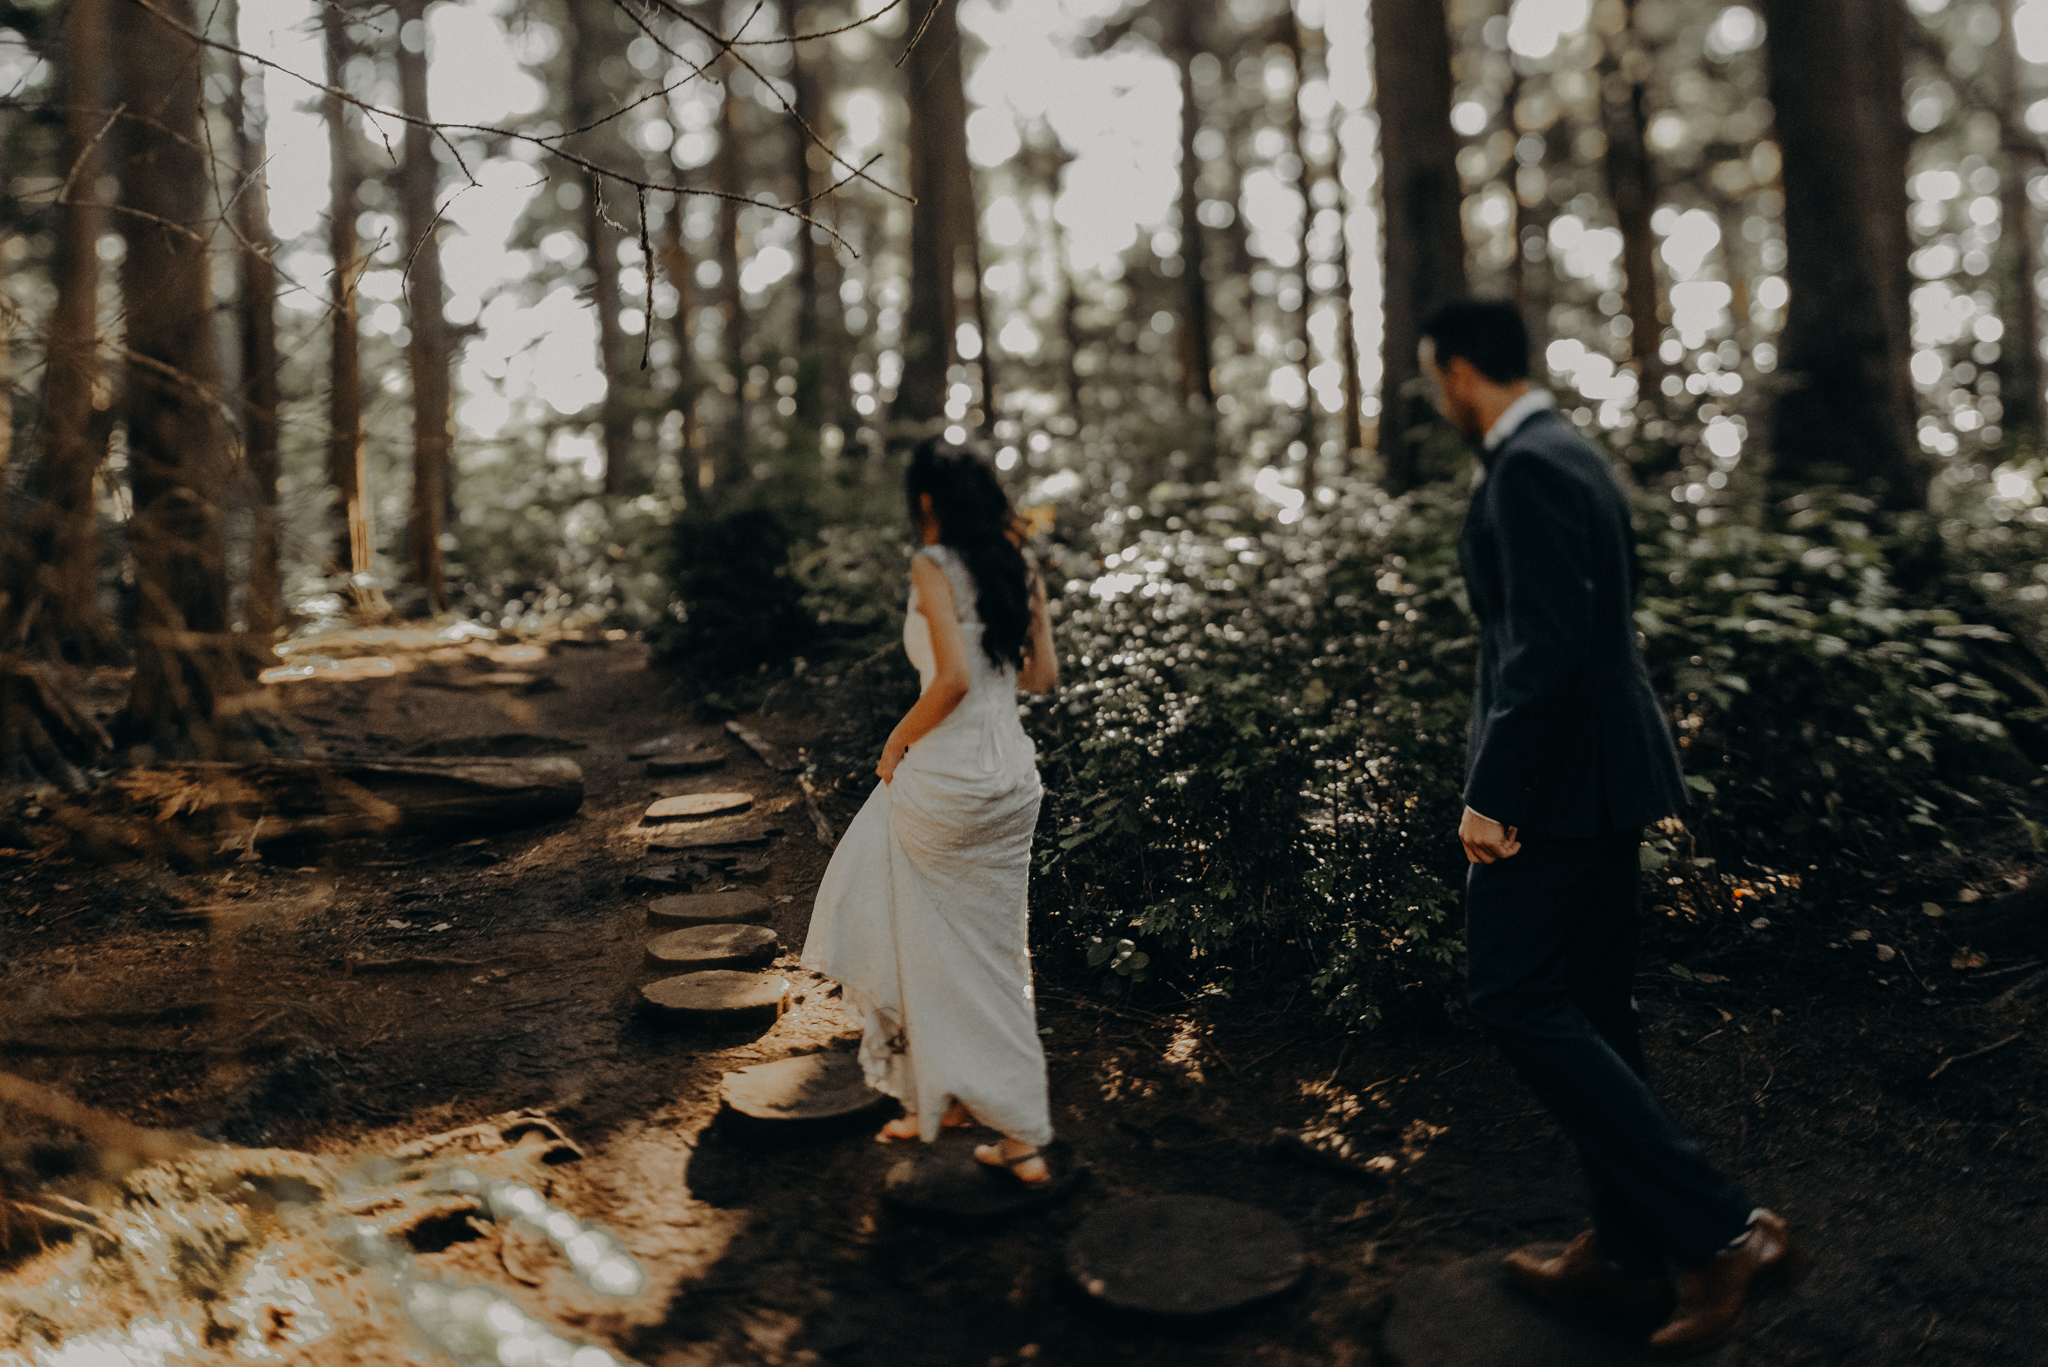 Isaiah + Taylor Photography - Cape Flattery Elopement, Olympia National Forest Wedding Photographer-025.jpg